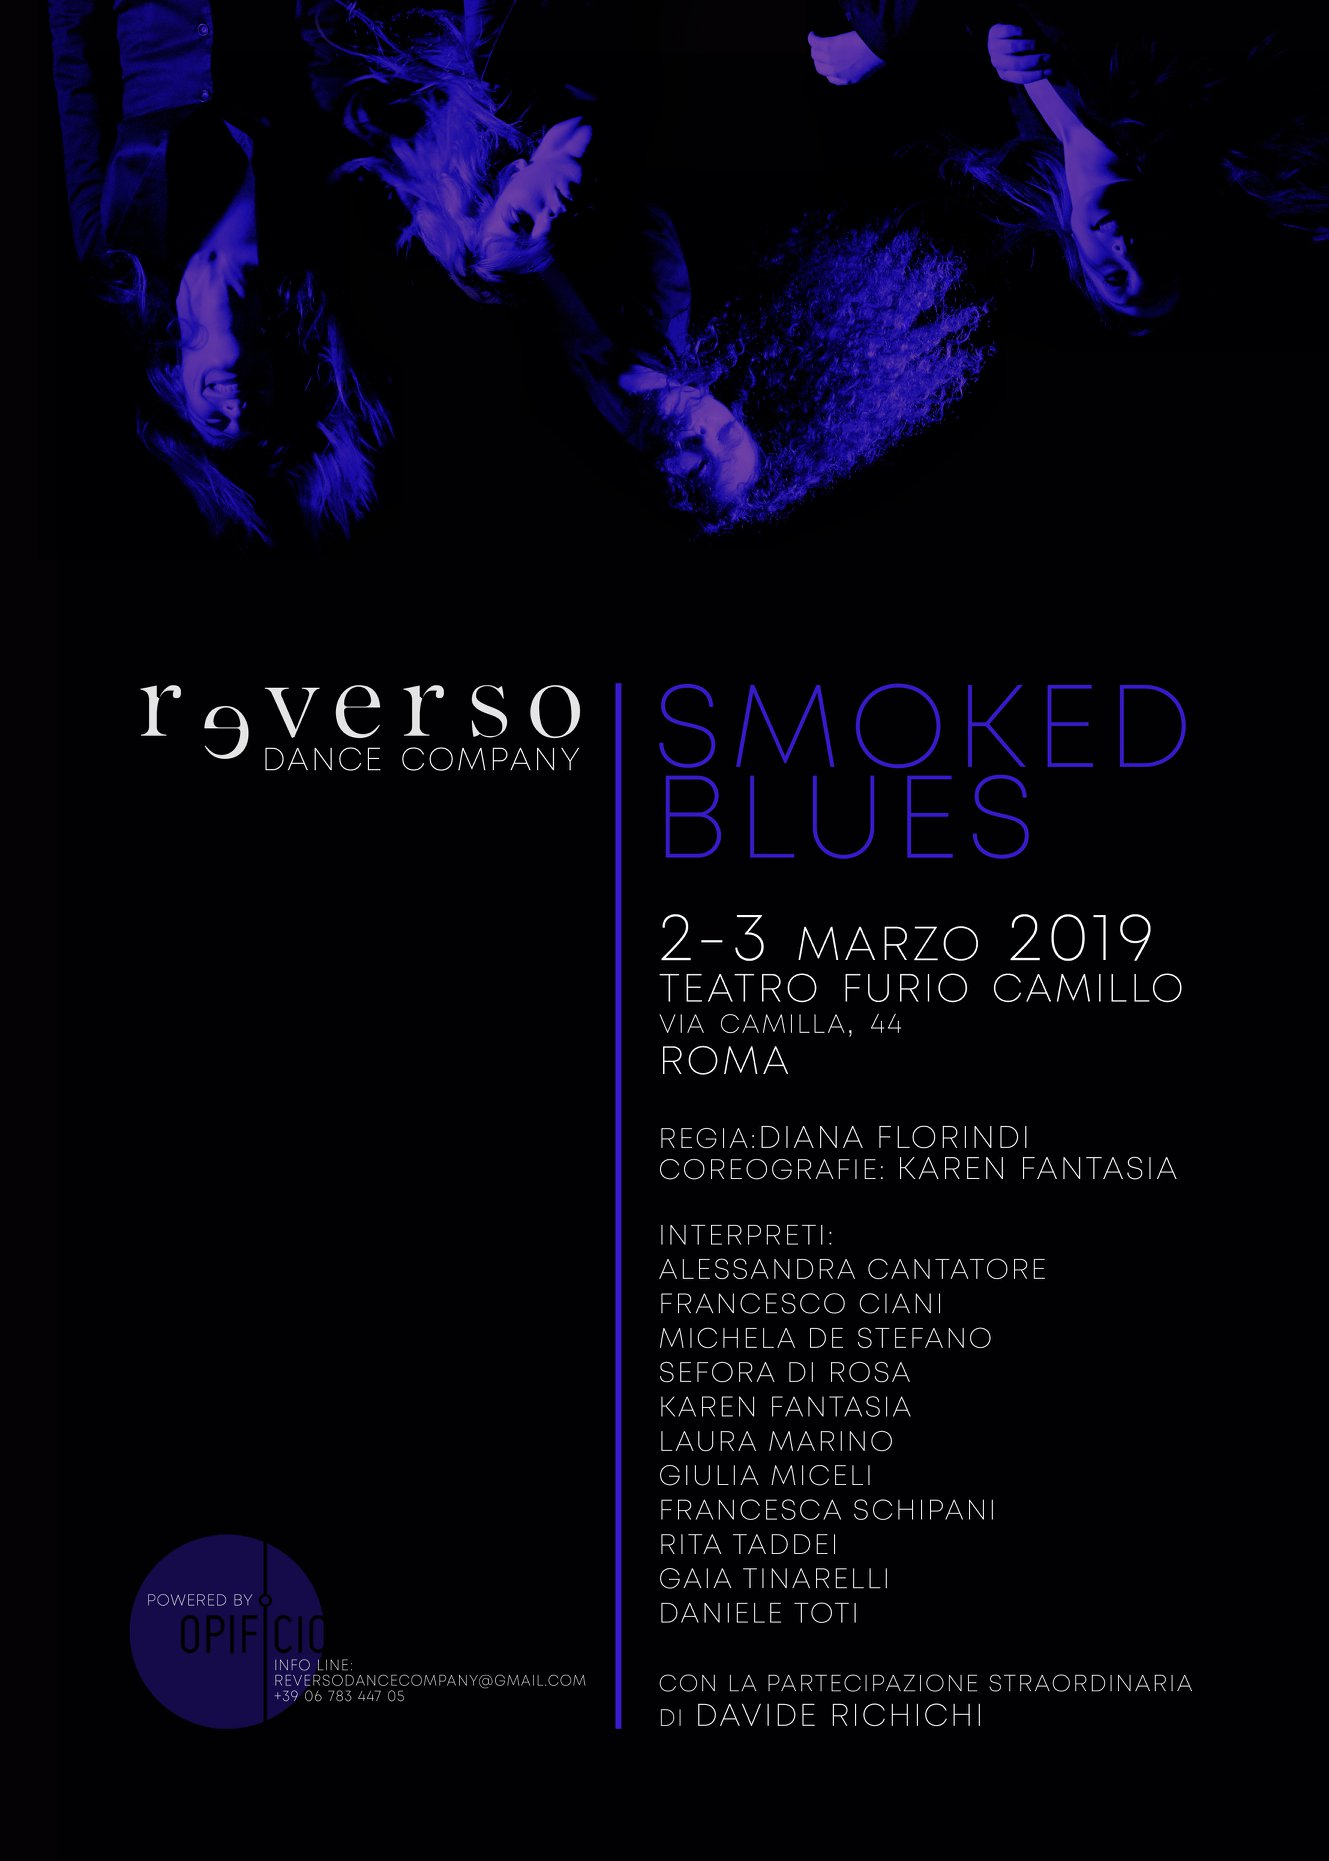 SMOKED BLUES - Chapter #2 / Reverso Dance Company